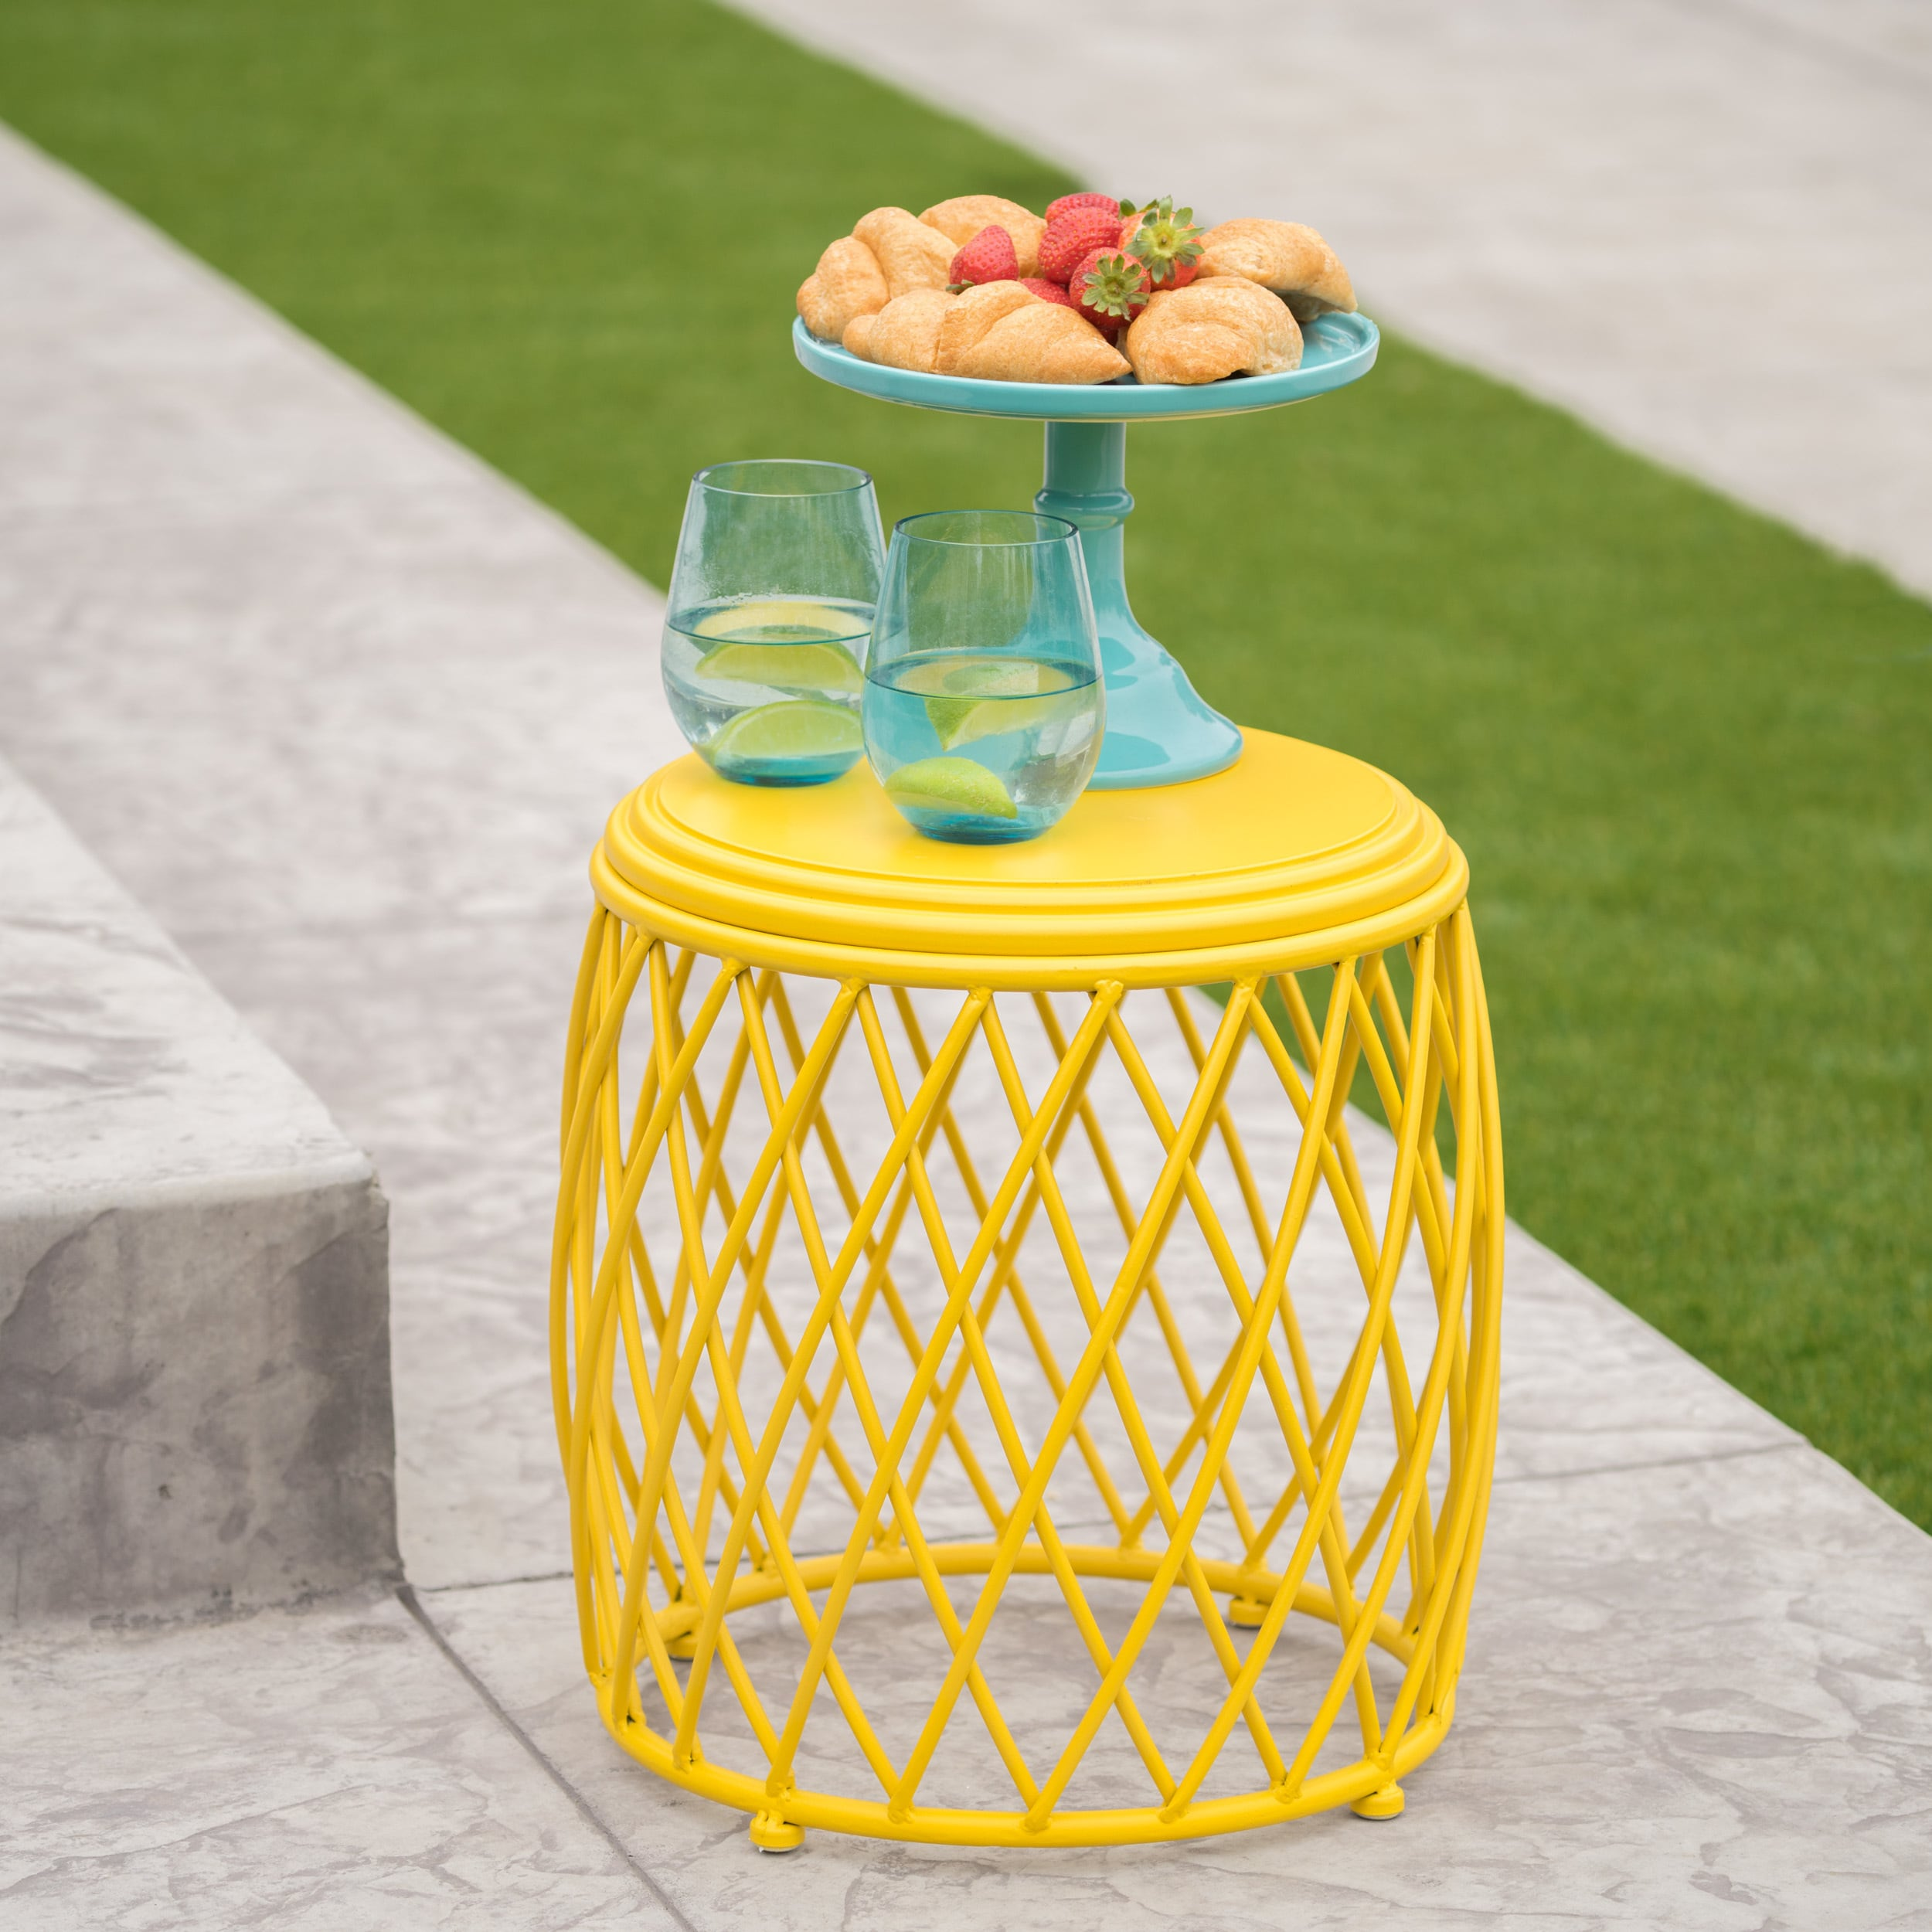 alamera outdoor inch lattice side table christopher knight home yellow free shipping today grey washed end tables wrought iron with glass tops turquoise entry portable maroc